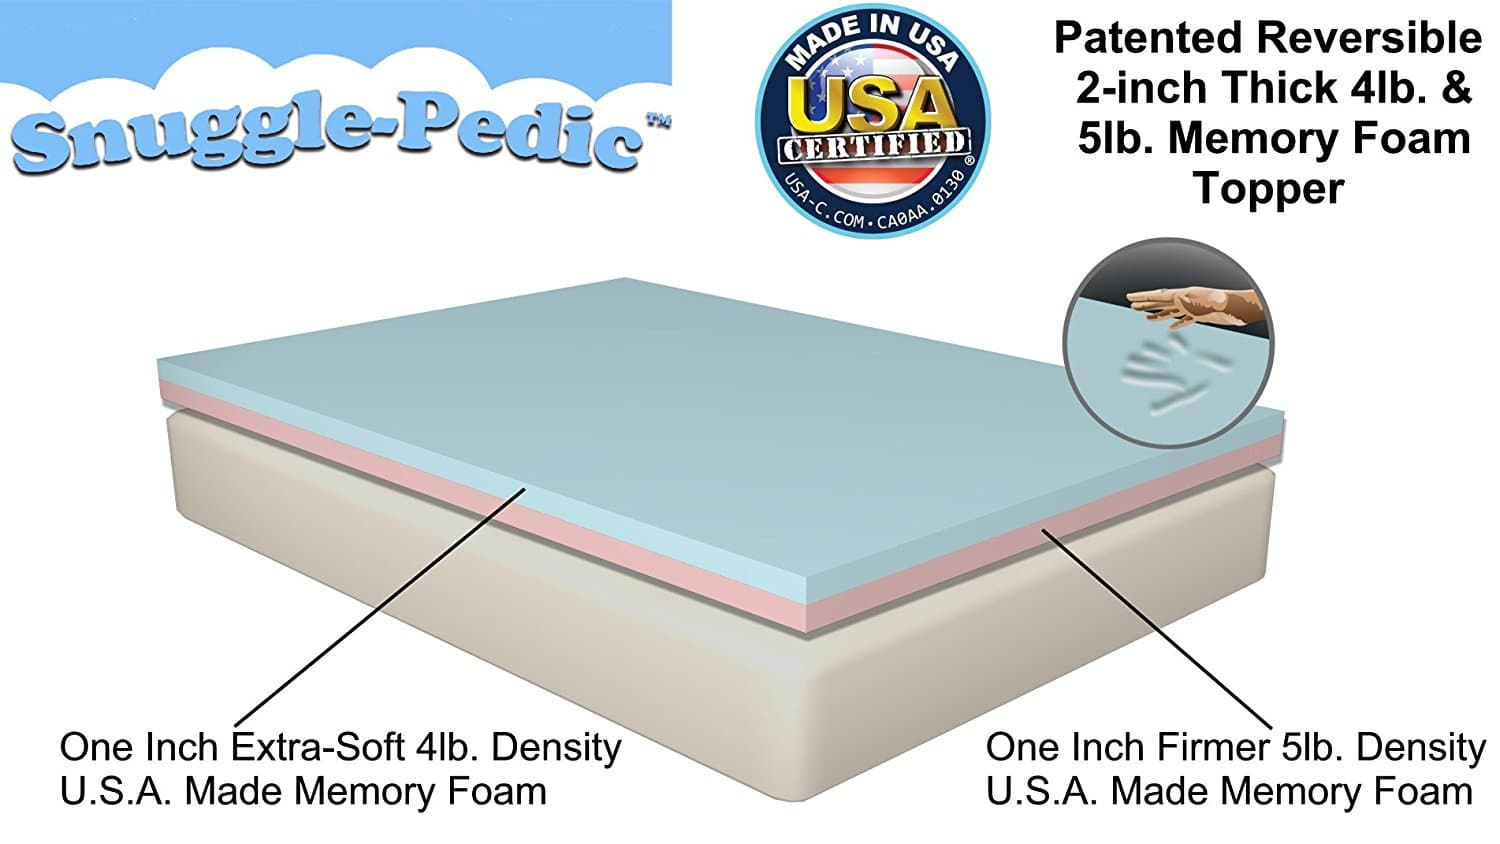 memory foam mattress topper - Snuggle-Pedic Patented Double Layer